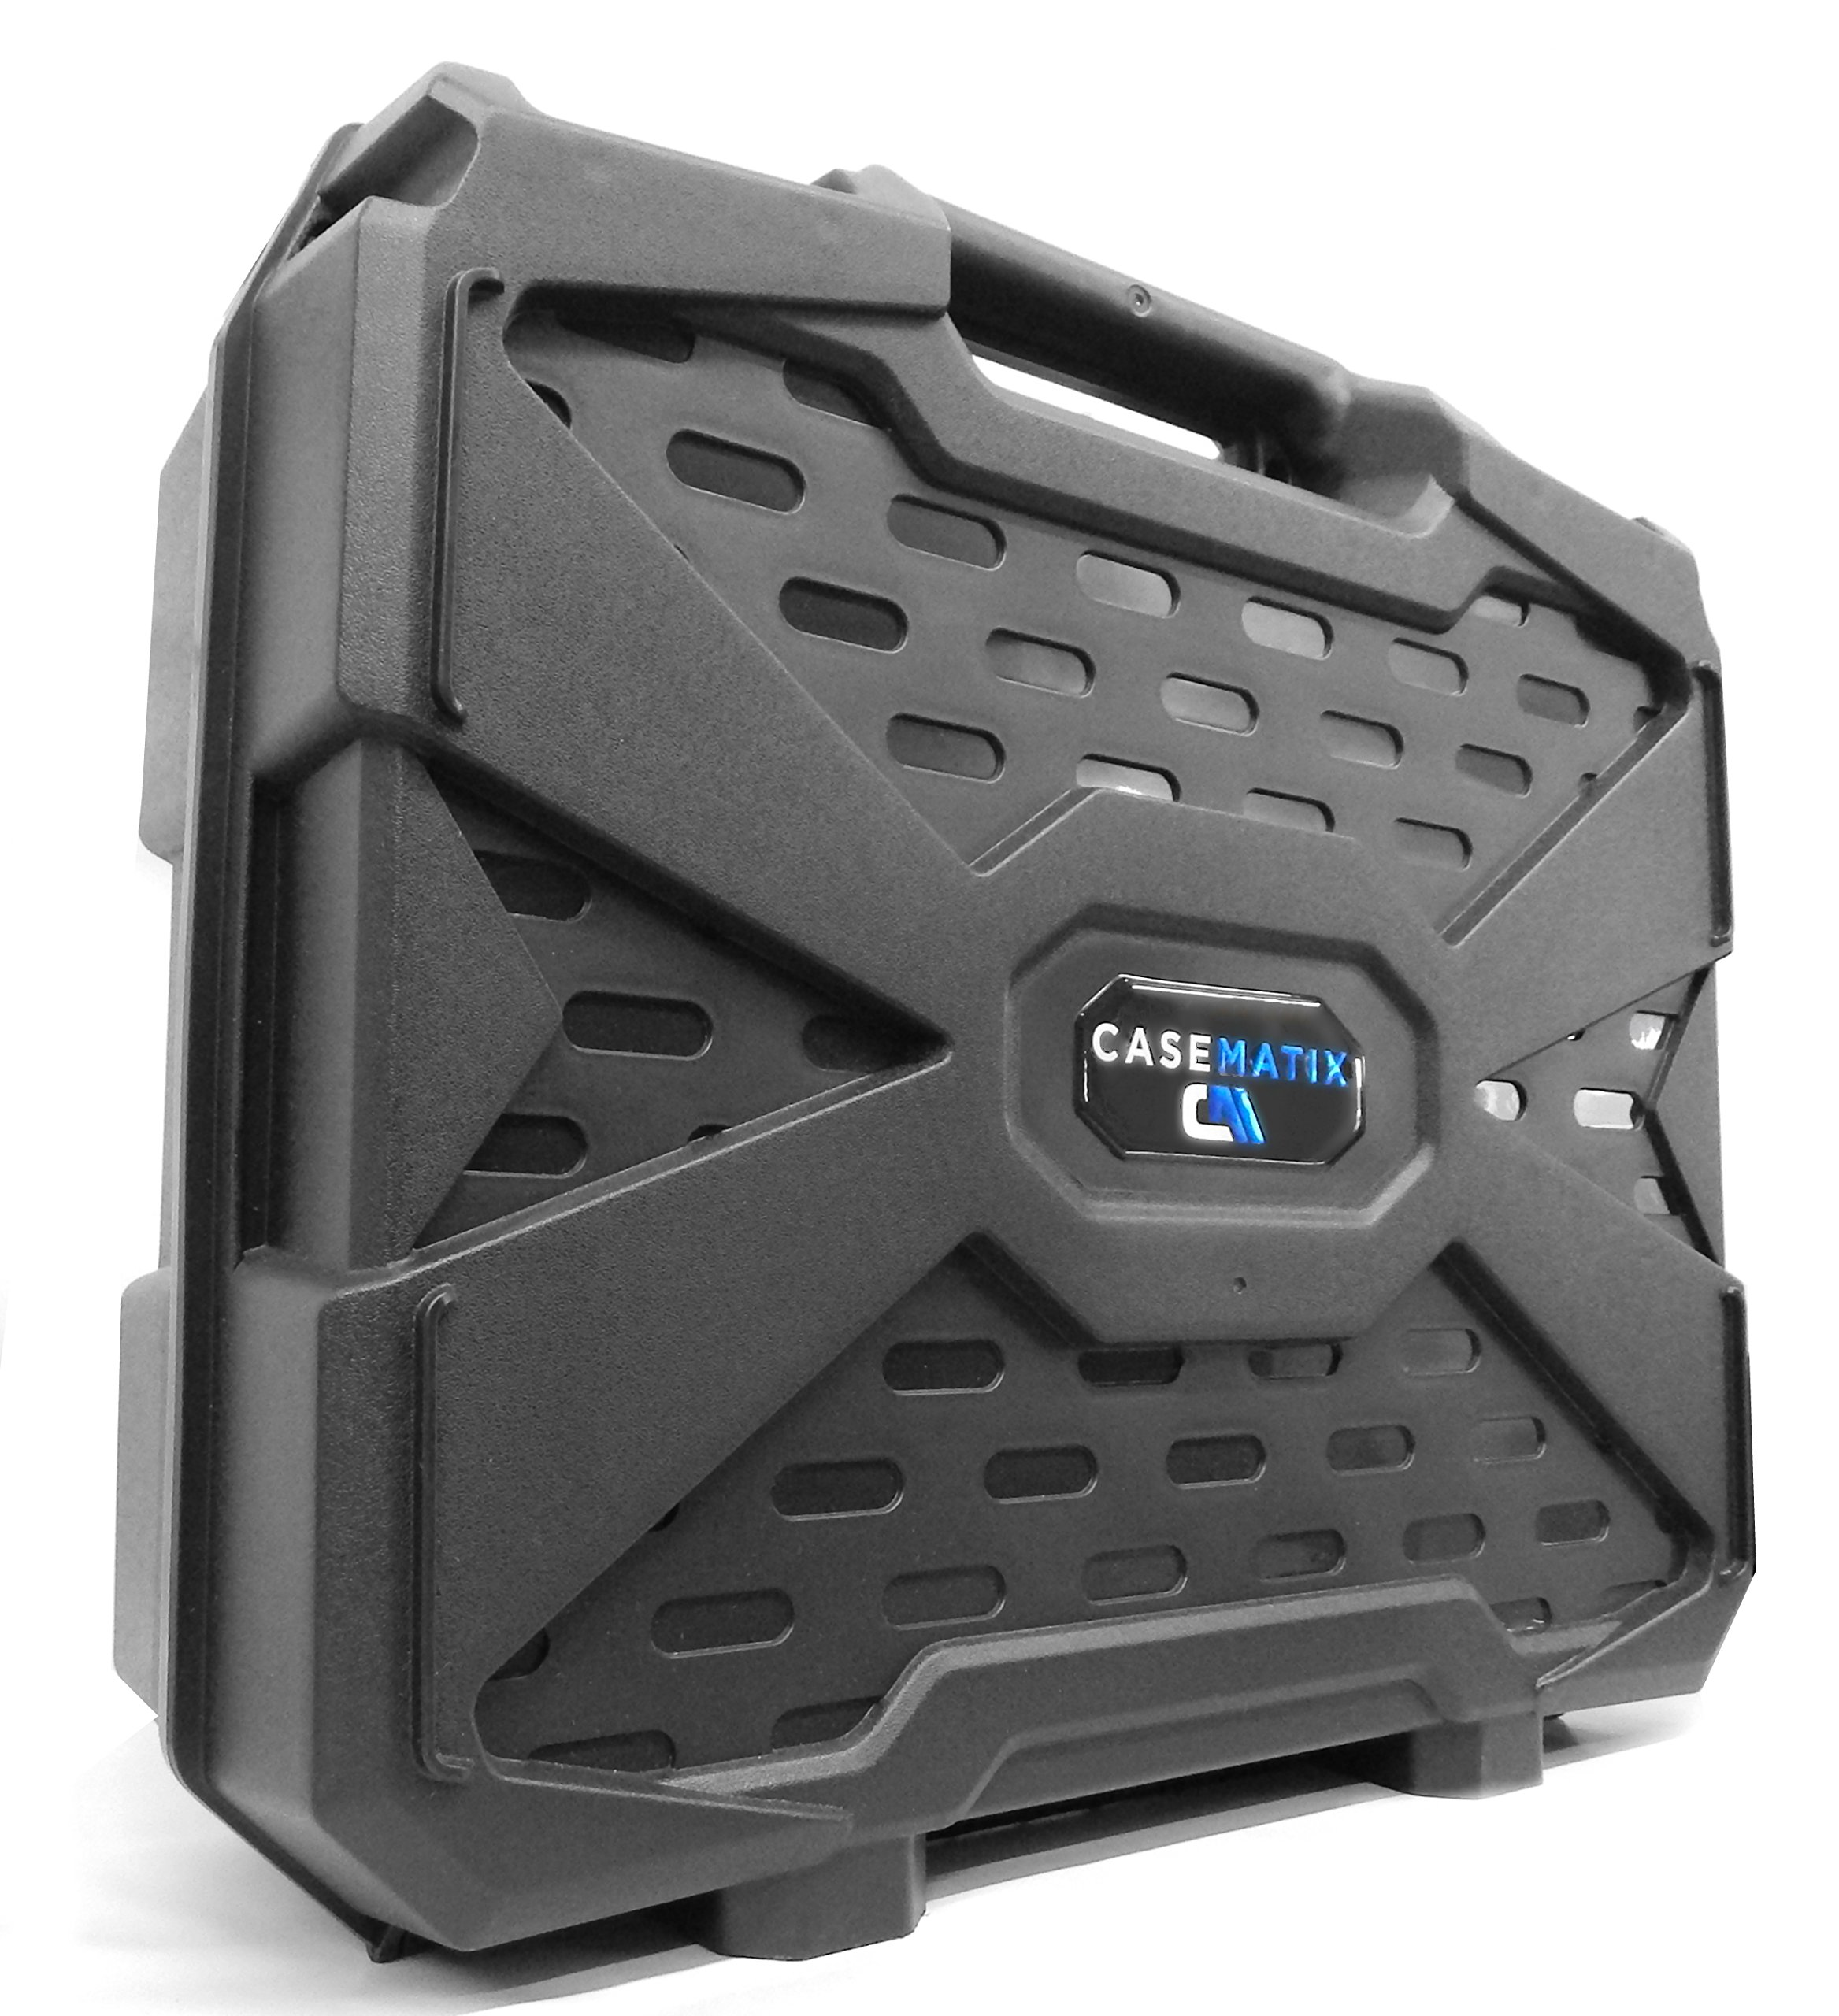 CASEMATIX Protective Projector Carrying Case Fits Epson PowerLite 1781W , 1780W , 1785W , 1795F , V11H796020 , V11H793020 , V11H795020 LCD Portable Projector and Accessories